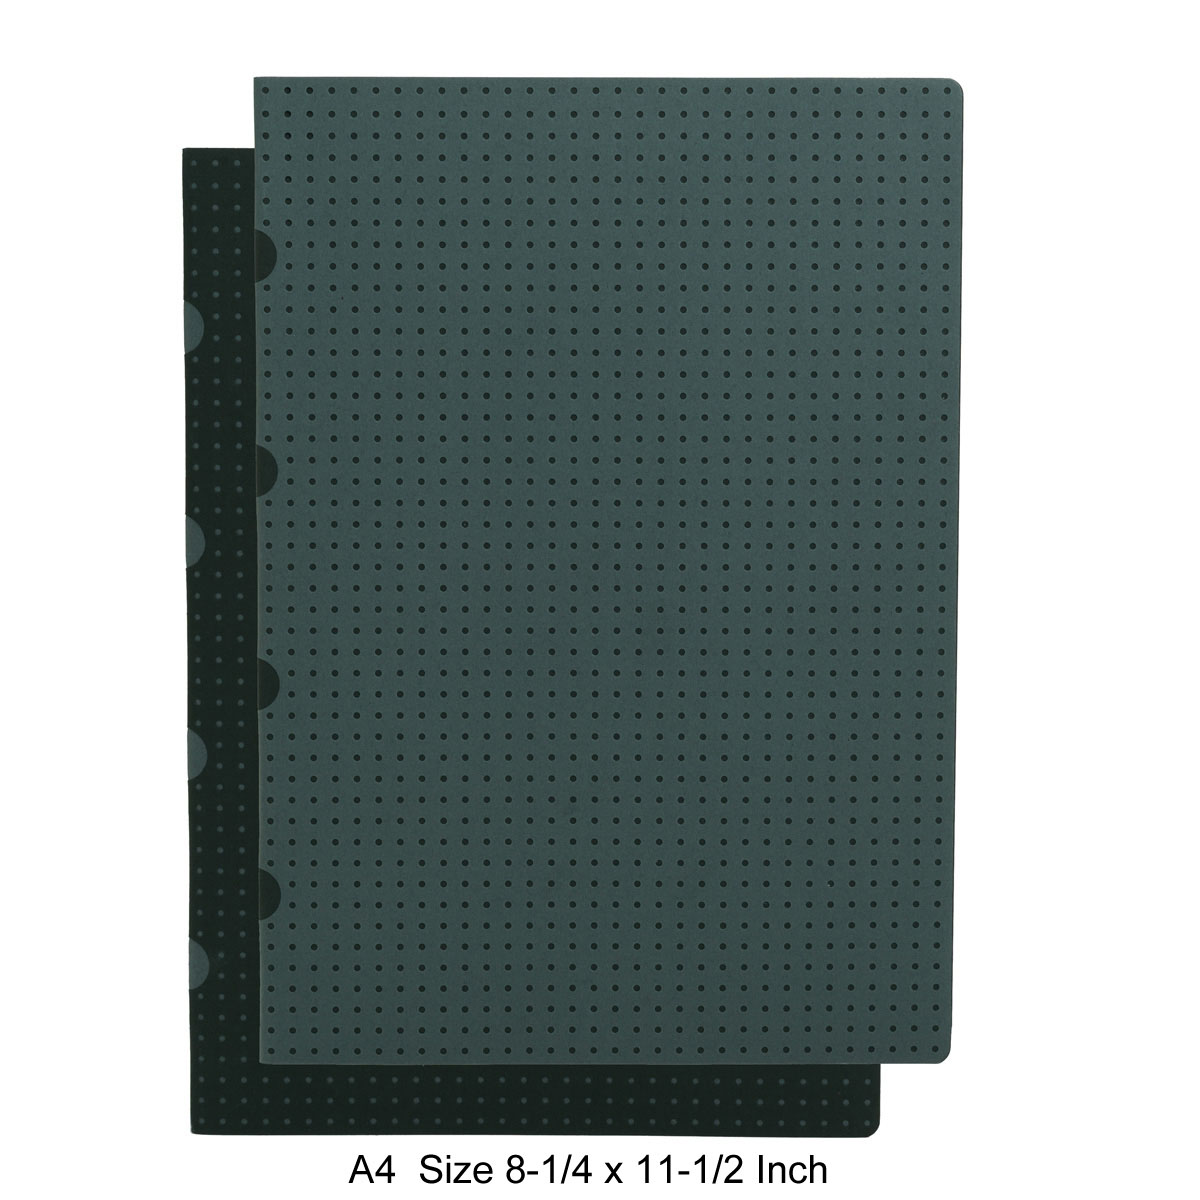 Paper-Oh Circulo Cahier Notebook A4 Size Mixed Set of 2